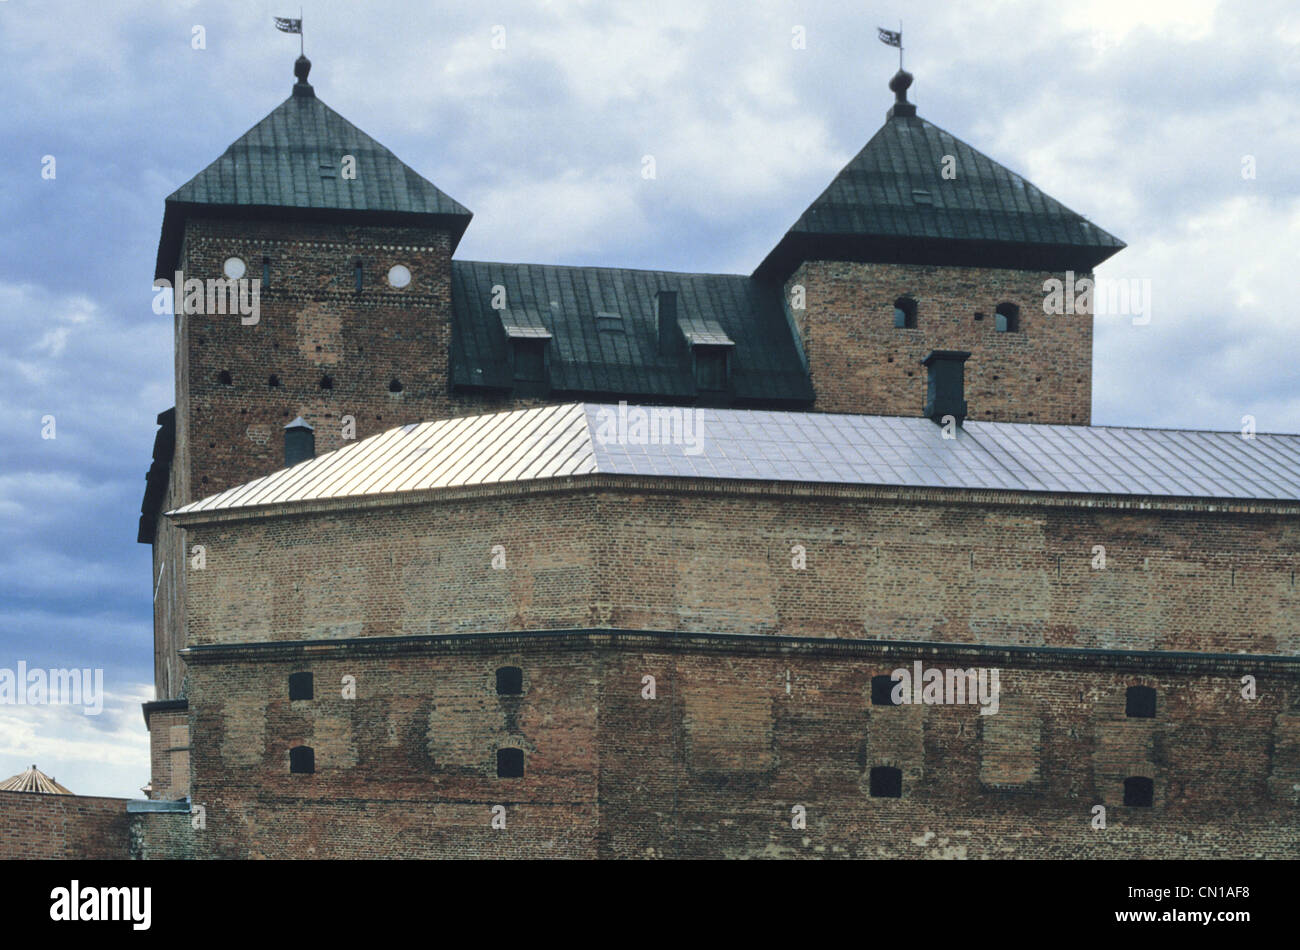 Hame Castle is a medieval castle in Hameenlinna, Finland. The castle is located on the shores of Lake Vanajavesi. Stock Photo